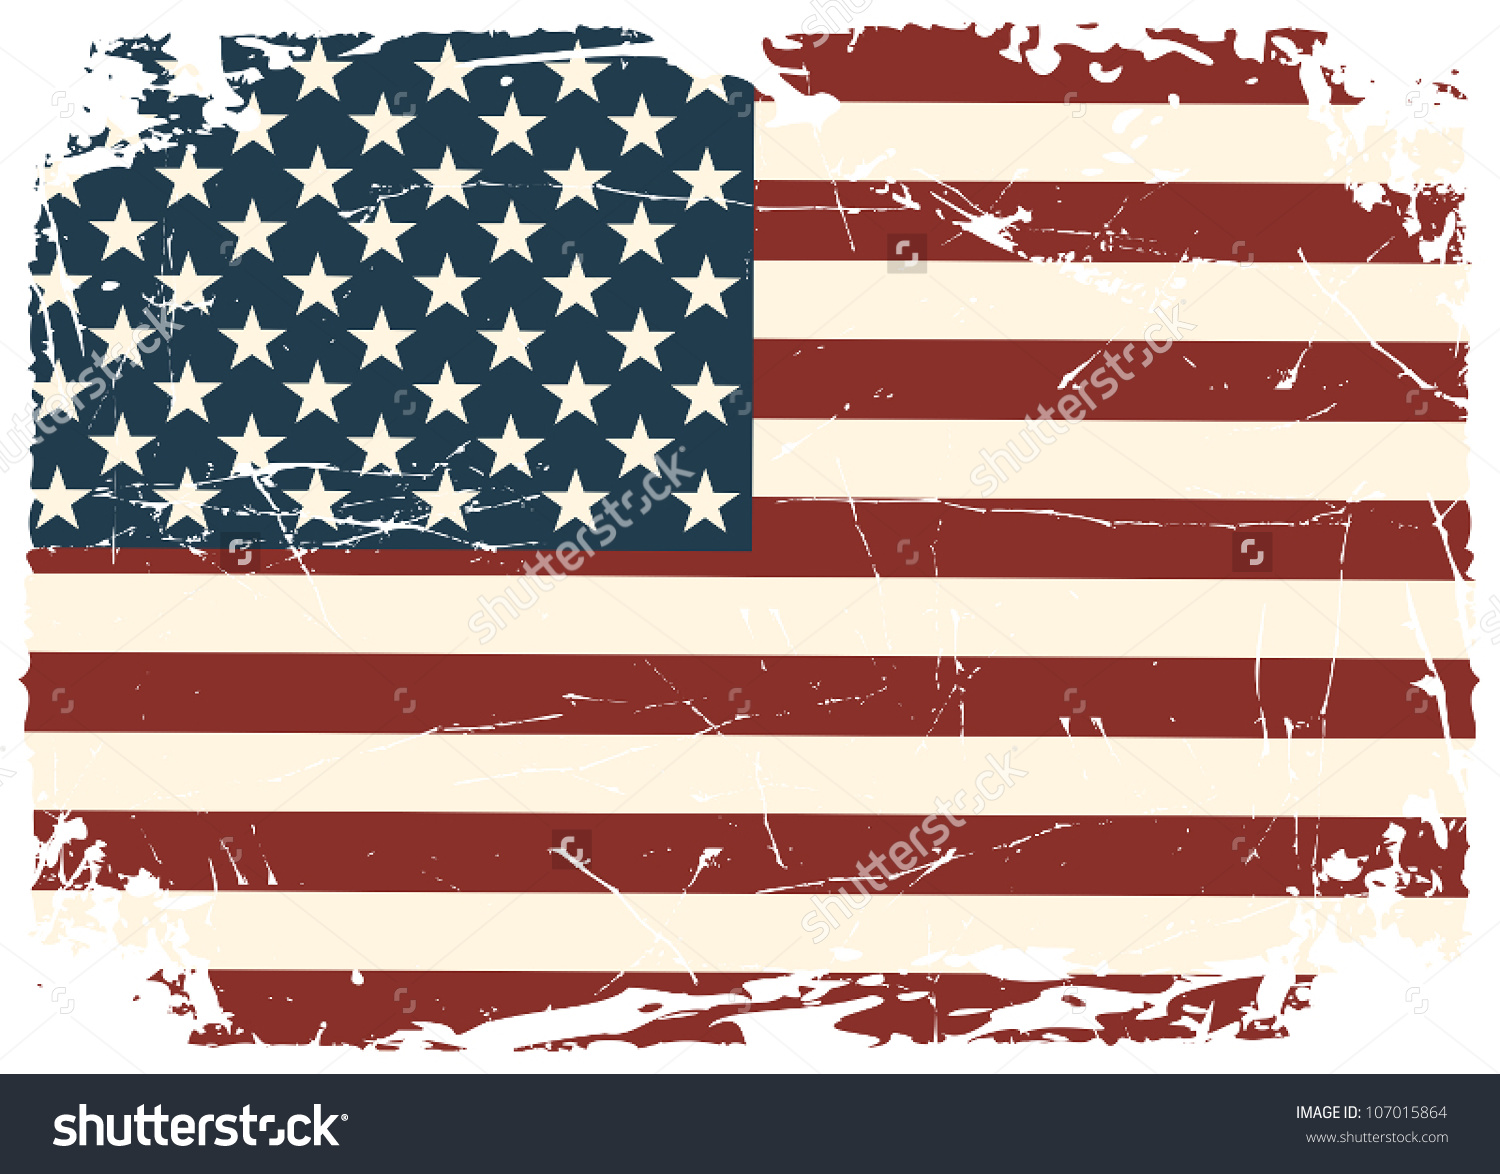 United states distressed flag clipart picture free Grunge American Flag Stock Vector 107015864 - Shutterstock picture free